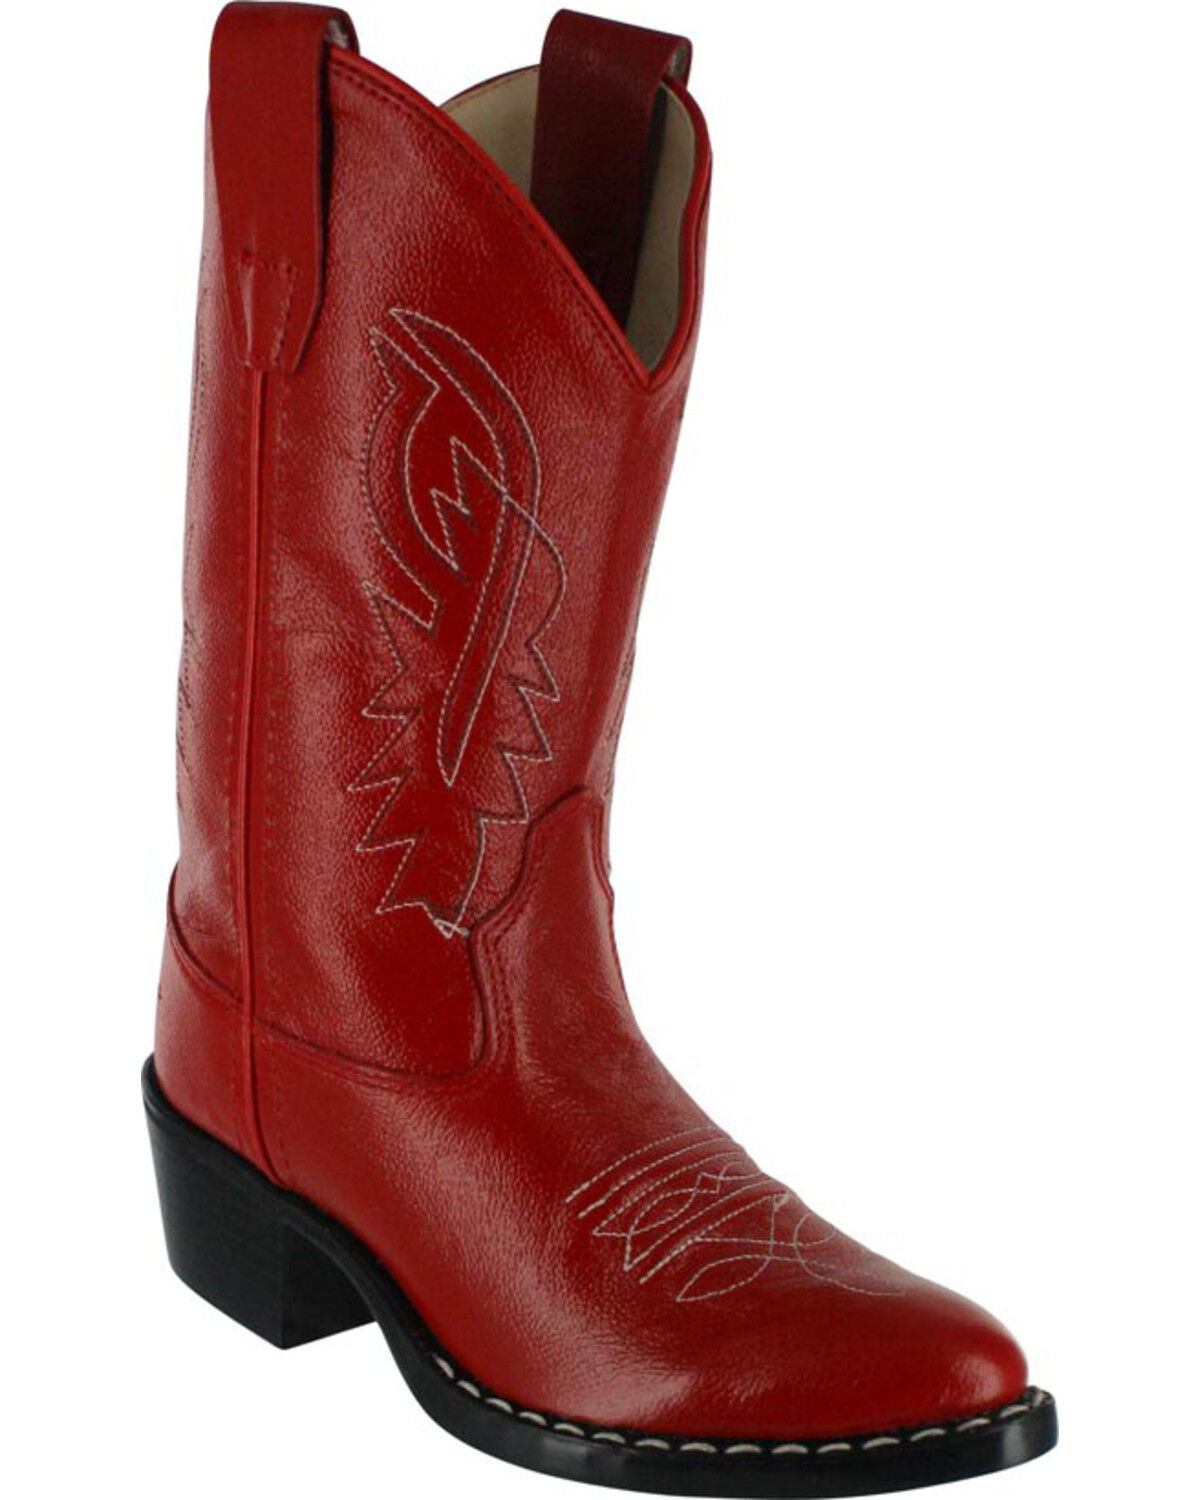 Reviews on Cowboy Boots in Santa Rosa, CA - Boot Barn, California Horse Supply, Saddles To Boots, Caballo De Oro Western Wear, Junior League of Napa Sonoma, Tate's Shoe Service, Goodwill - Redwood Empire, Apple Cobbler, Express Shoe Repair,.